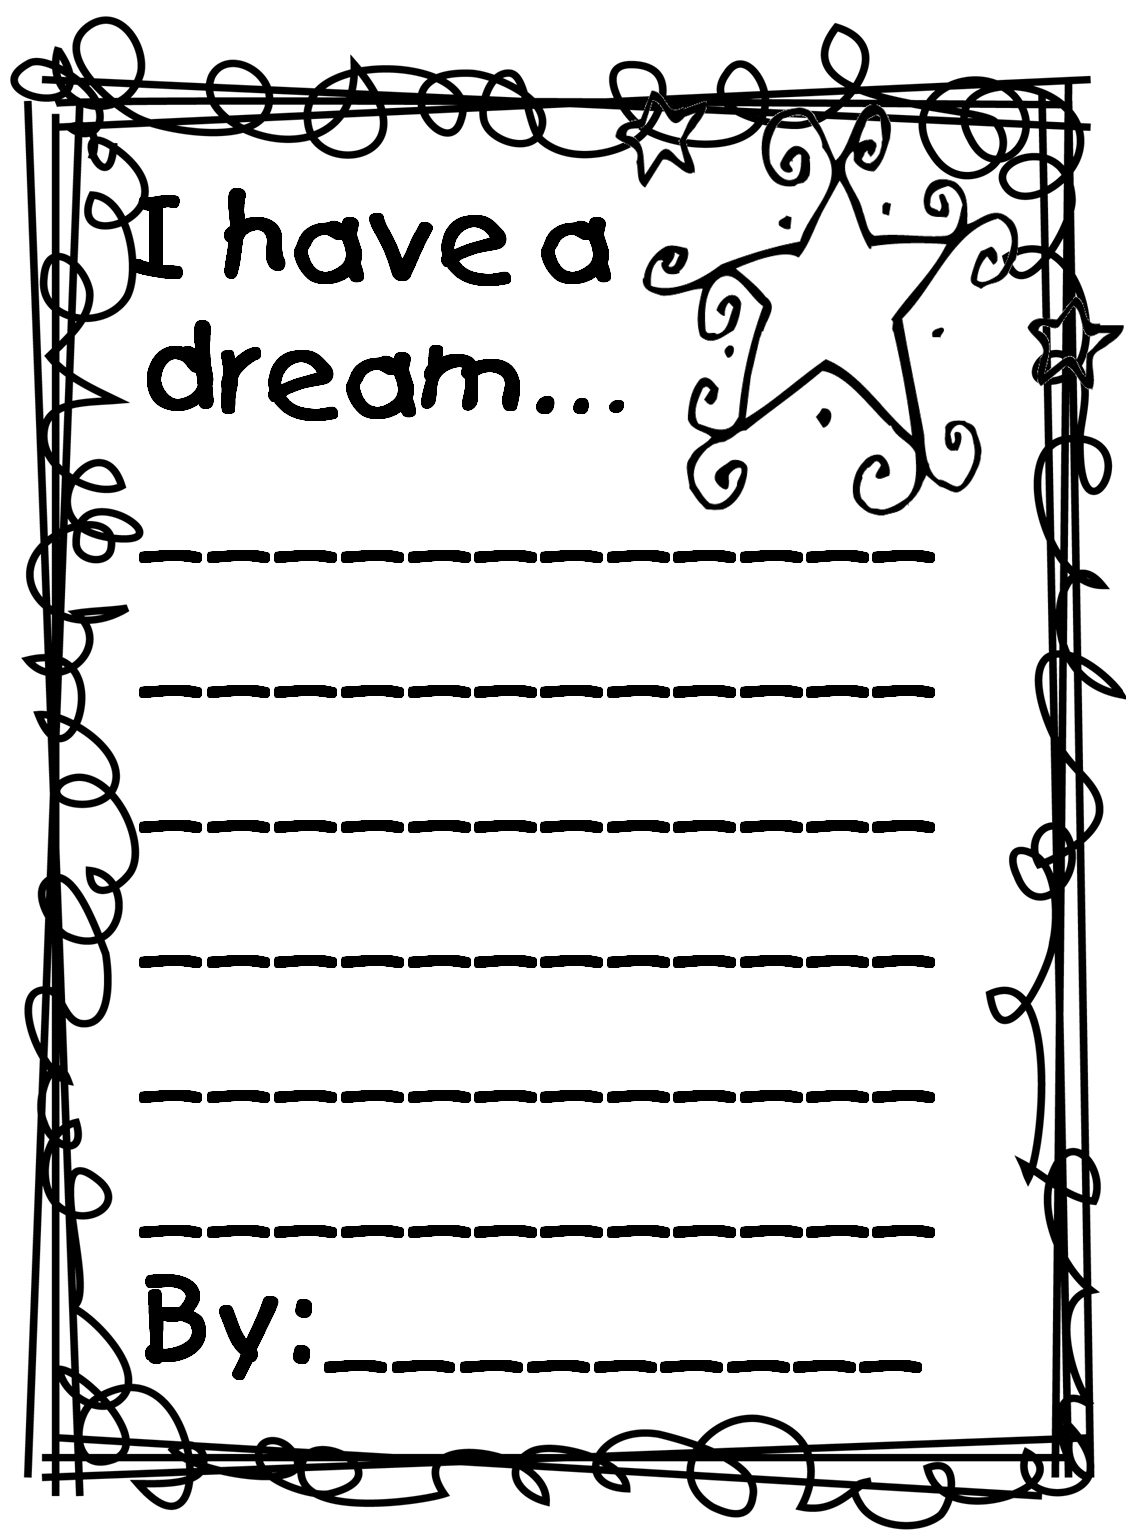 Uncategorized I Have A Dream Worksheet martin luther king jr coloring pages and worksheets best i have a dream worksheet